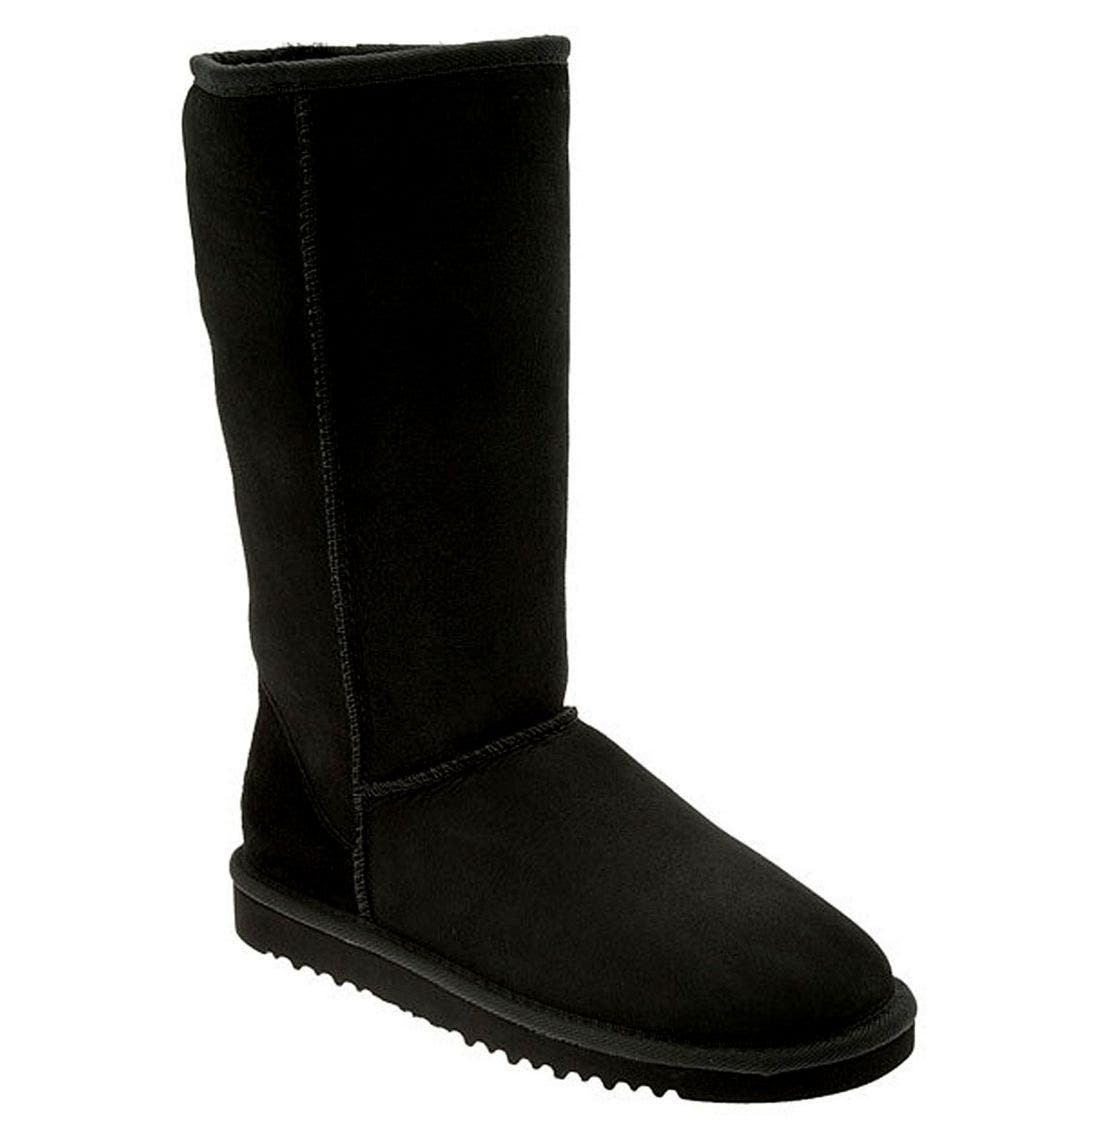 chocolate brown tall ugg boots